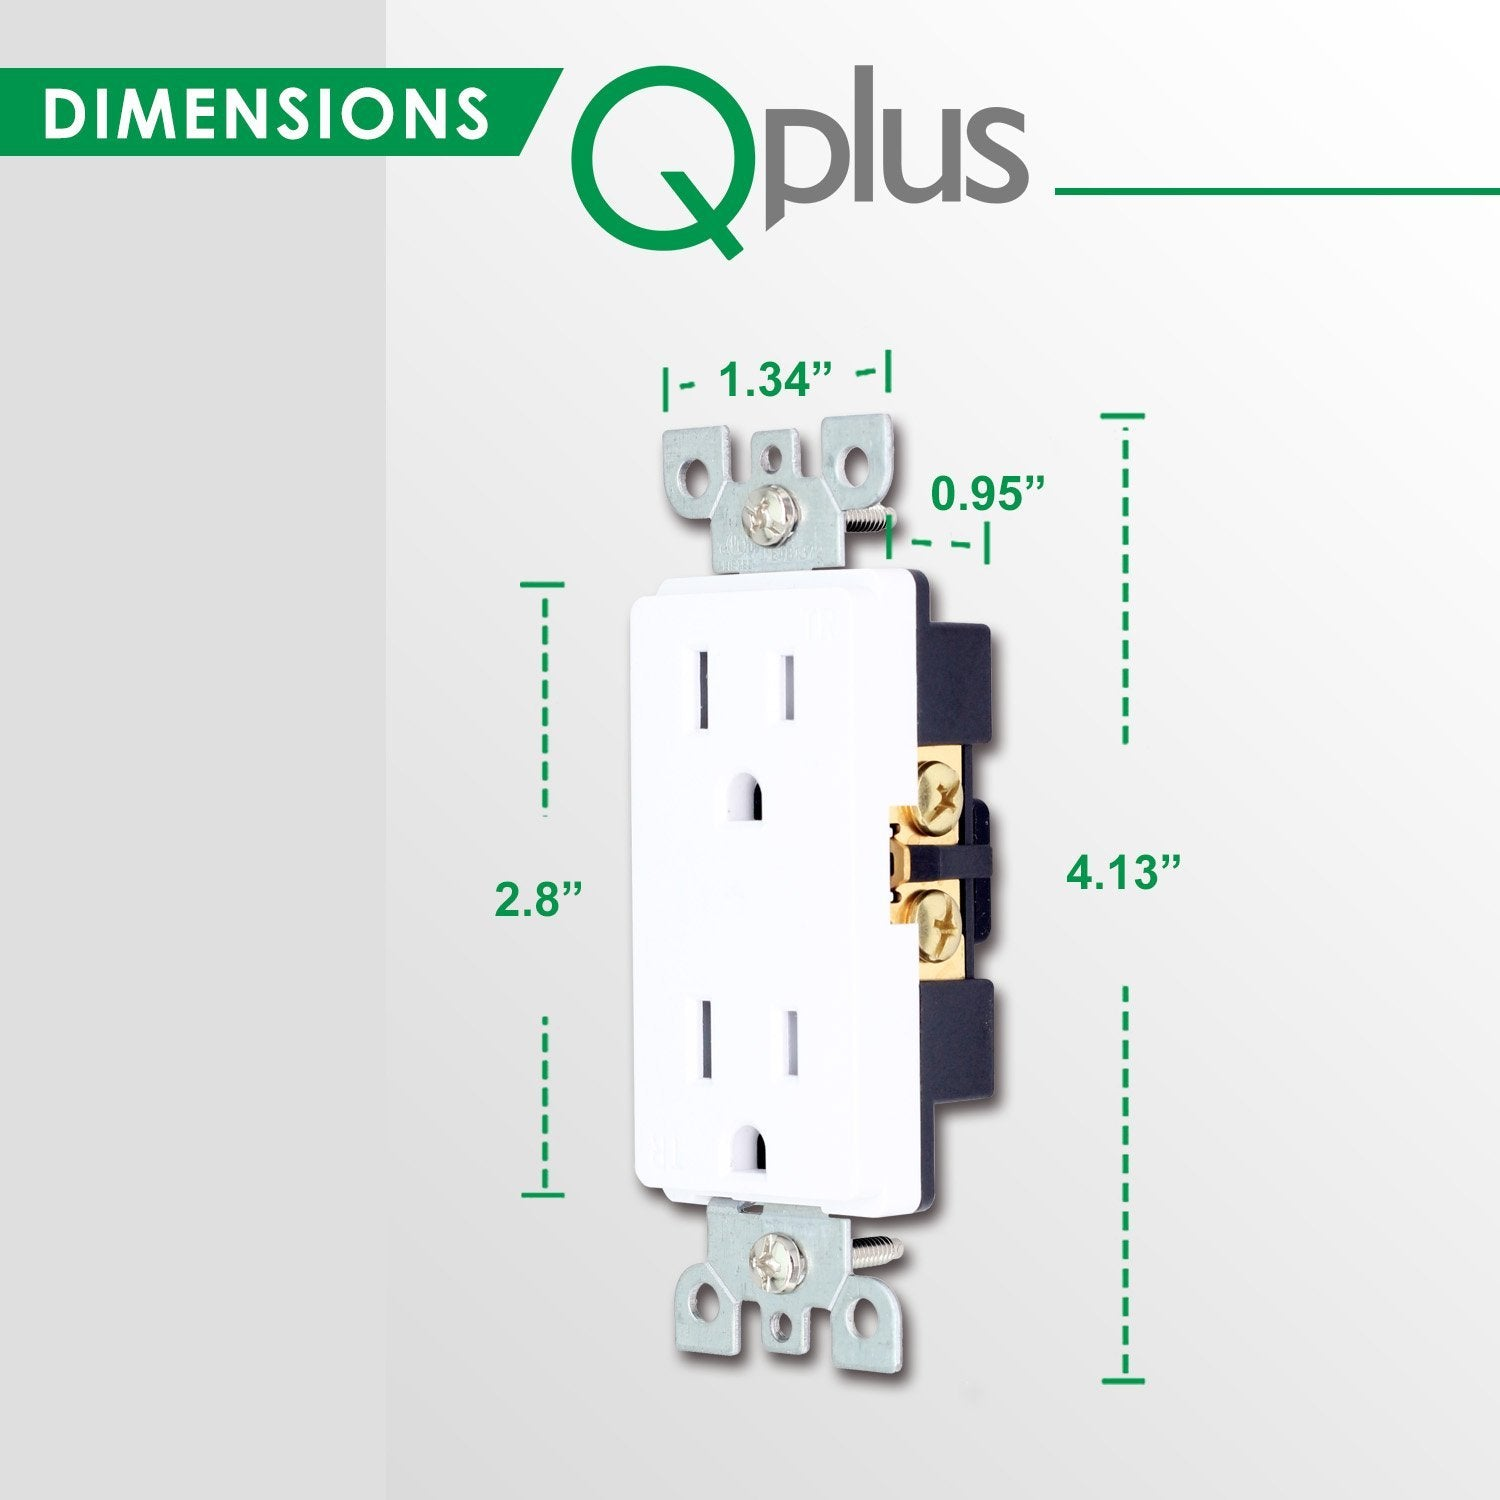 QPLUS 15Amp Tamper Resistant Wall Outlet - UL Listed (Wall Plates & Screws Included) - QPlus Home - Brighten Your Life